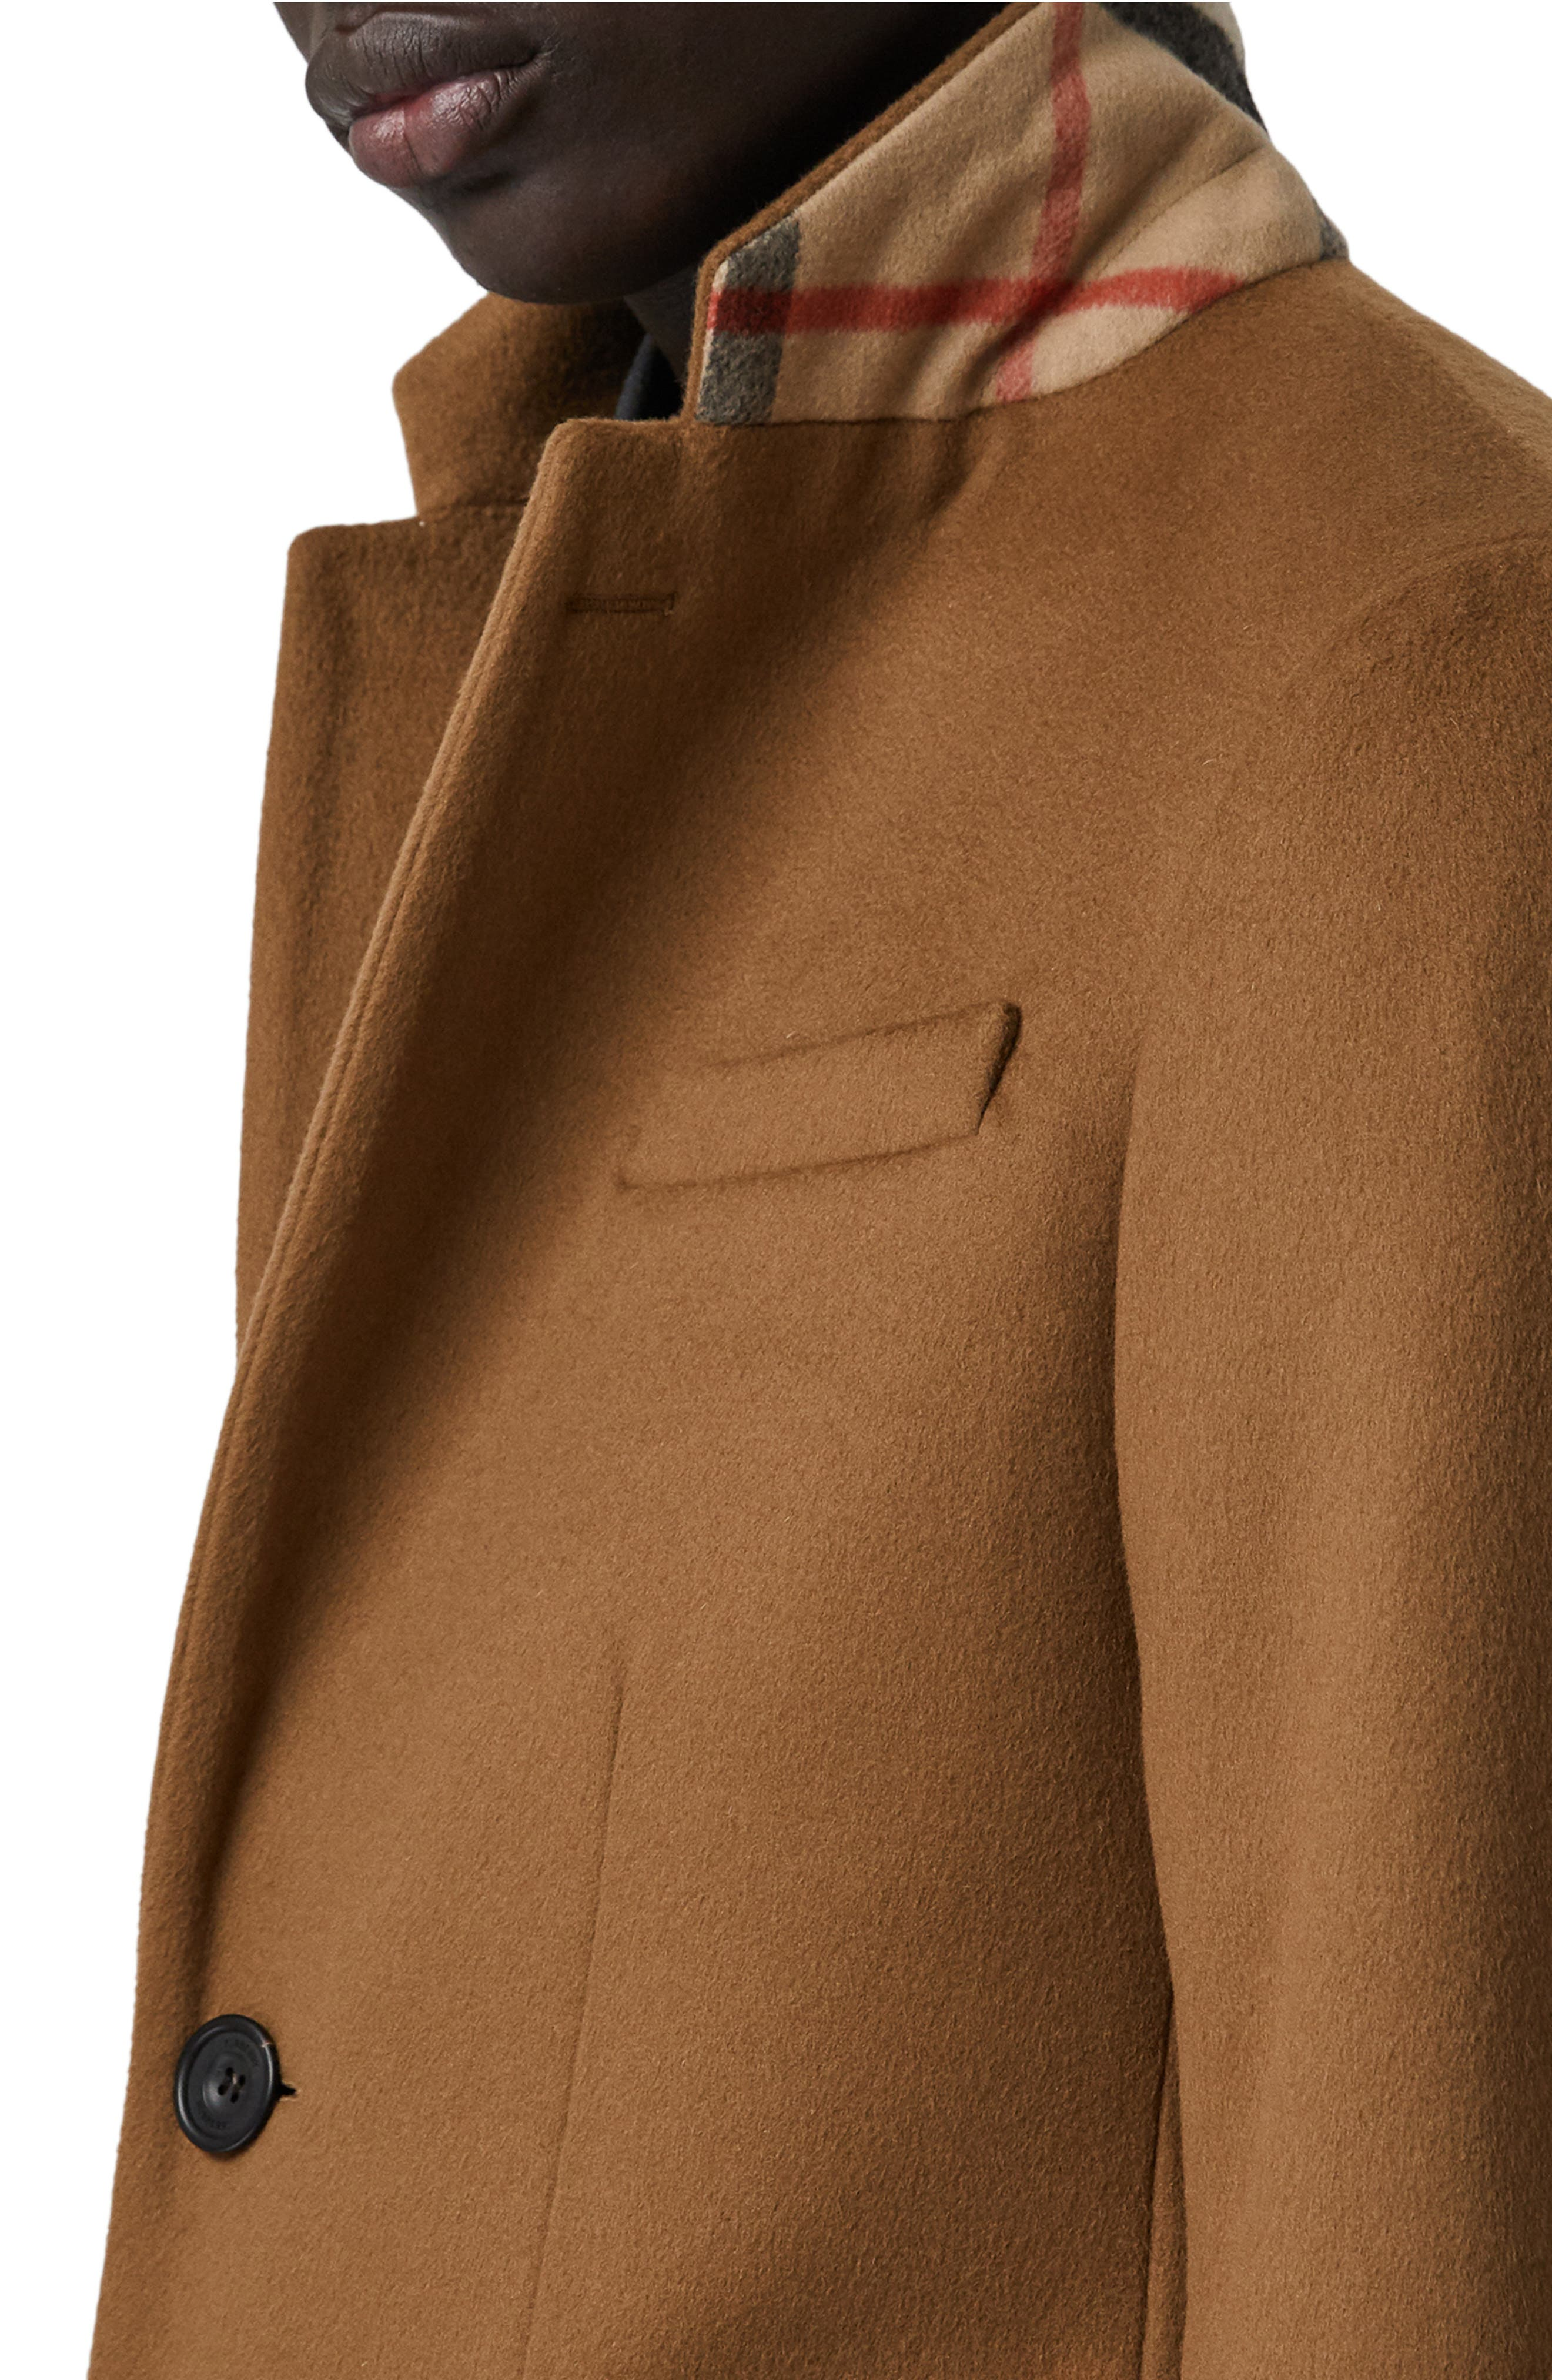 Halesowen Wool and Cashmere Overcoat,                             Alternate thumbnail 4, color,                             DARK CAMEL